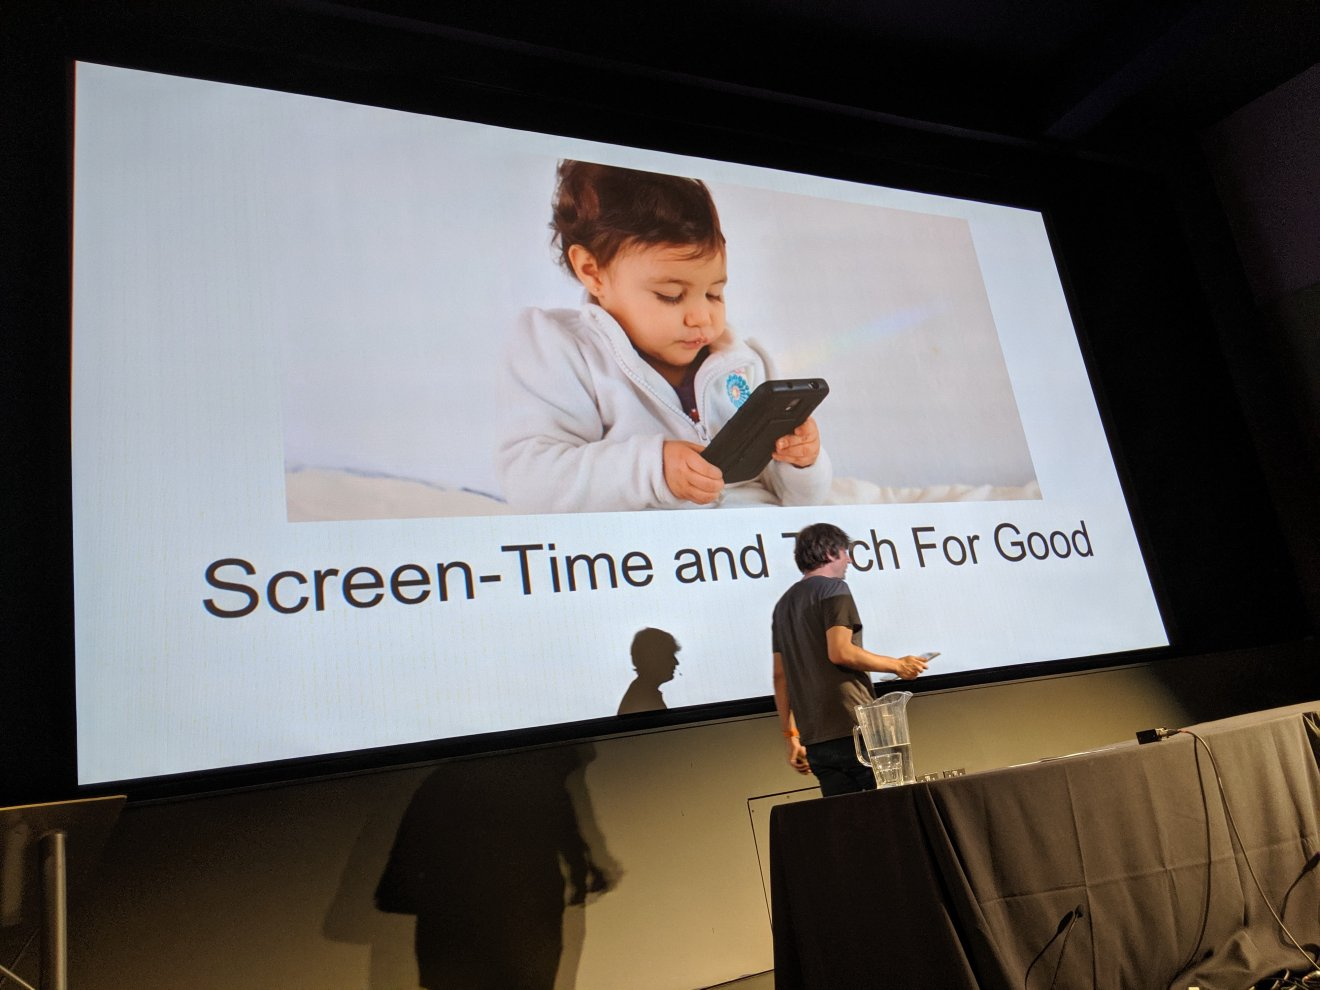 Screen-Time and Tech for Good, a talk